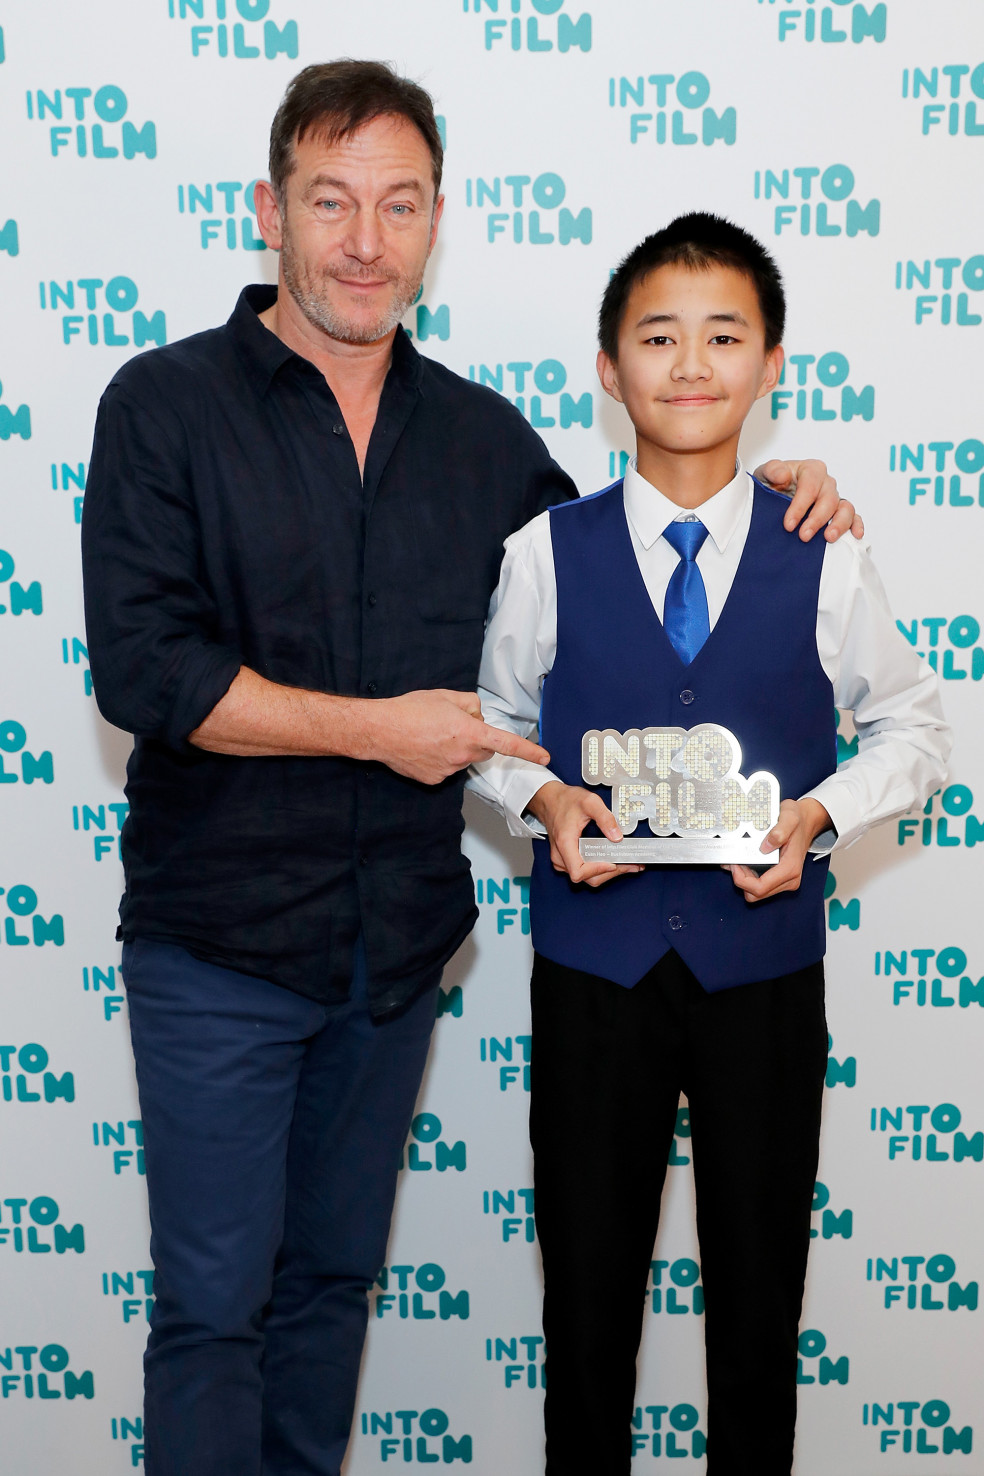 Into Film Club Member of the Year winner Euan with actor Jason Isaacs